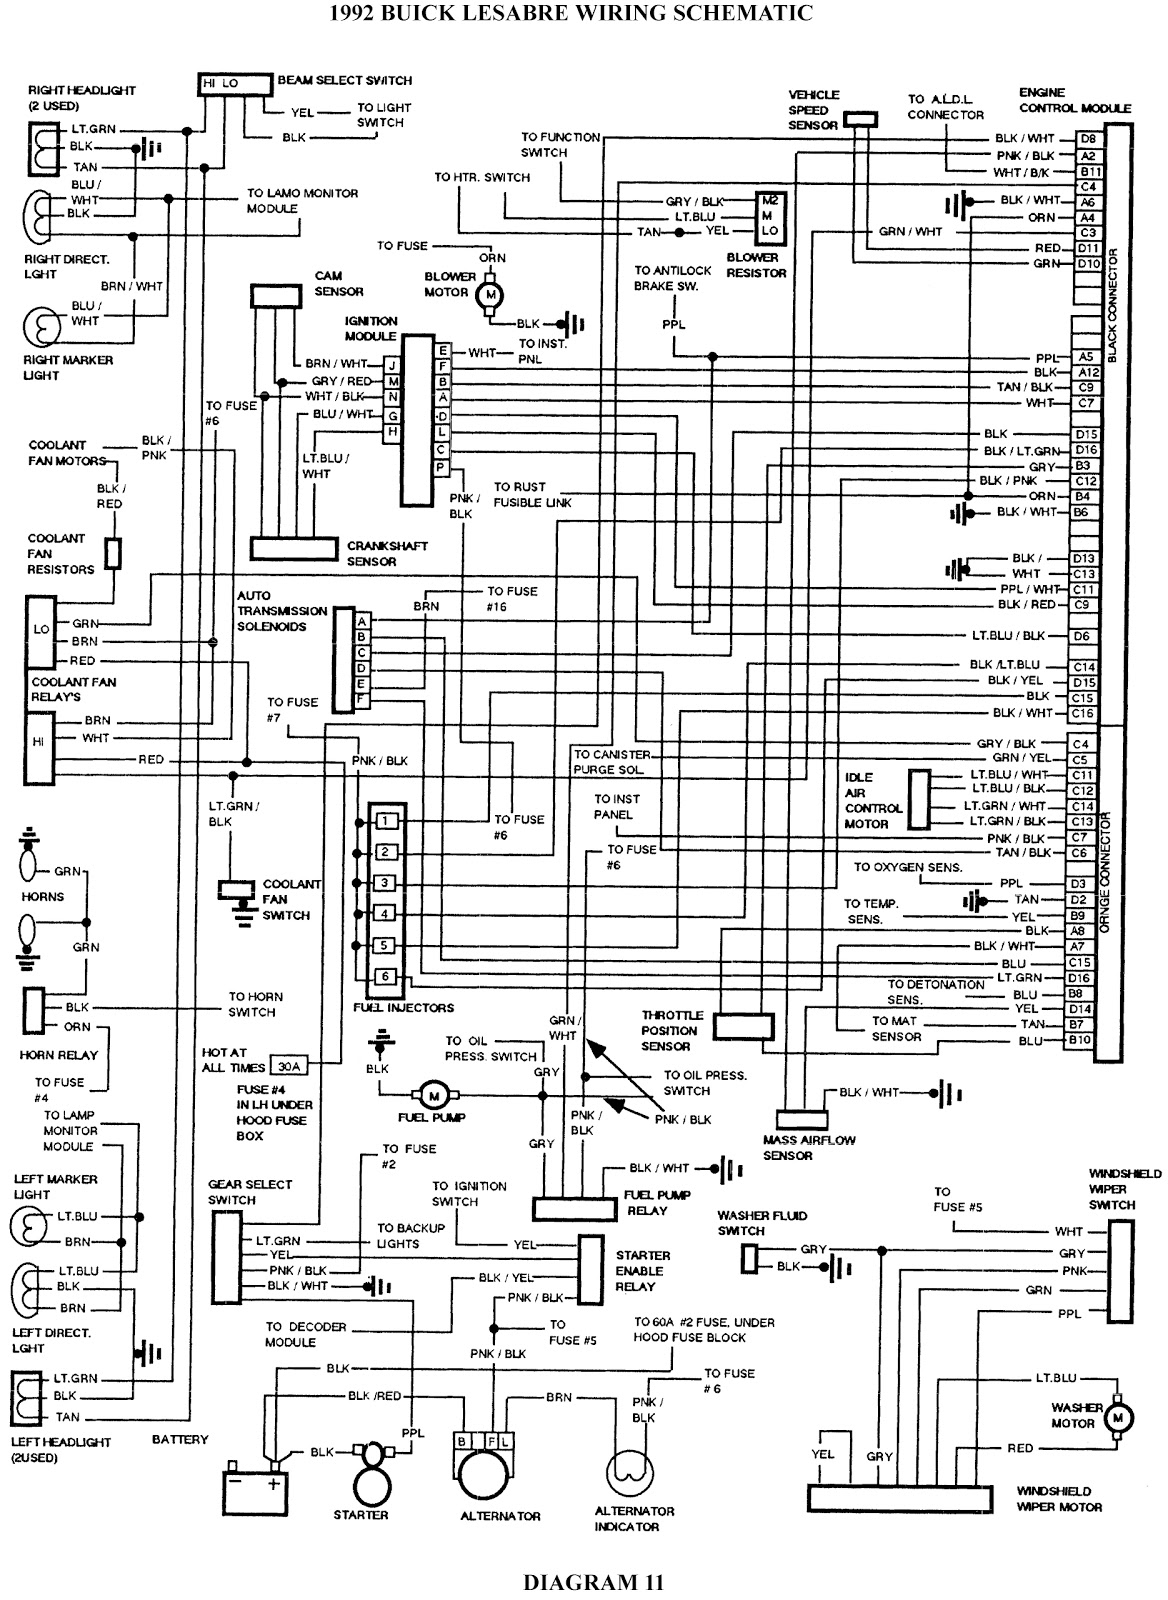 wiring diagram 1995 buick park avenue wiring diagram value 2000 buick lesabre power window wiring diagram 2000 buick lesabre wiring diagram [ 1168 x 1600 Pixel ]